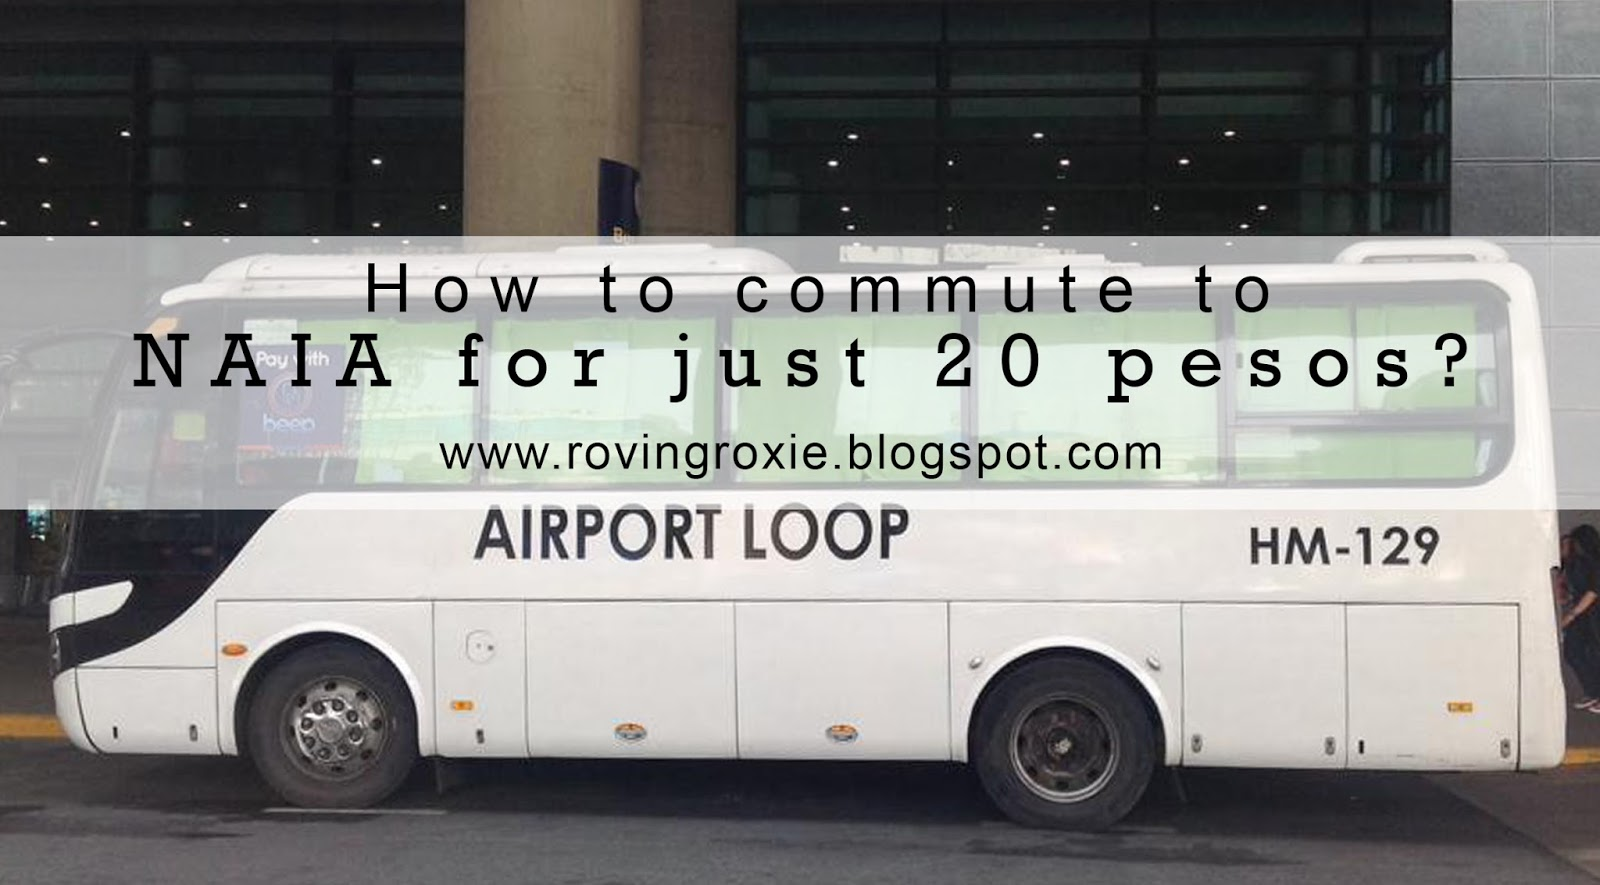 roving roxie: how to commute to naia for just 20 pesos?